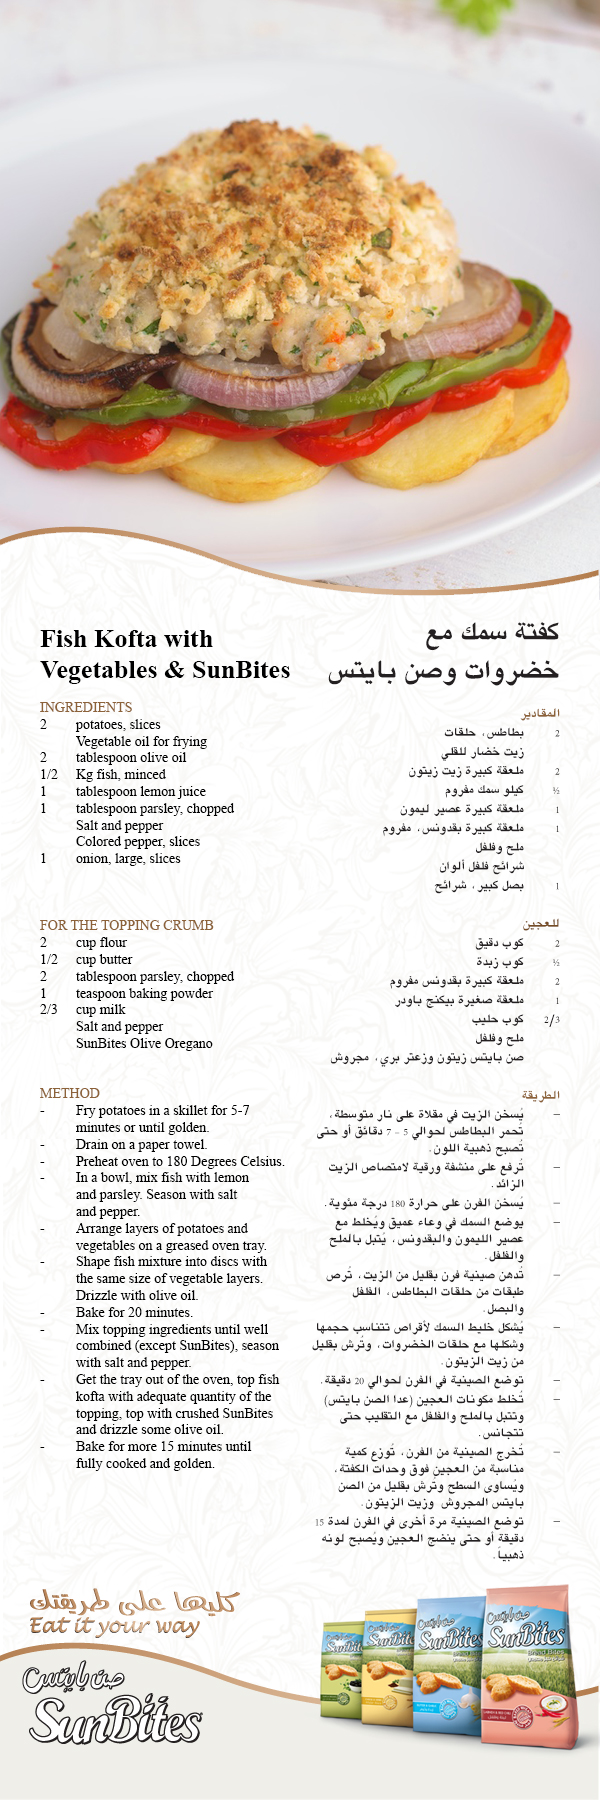 Sunbites Arabia Recipes Cooking Food